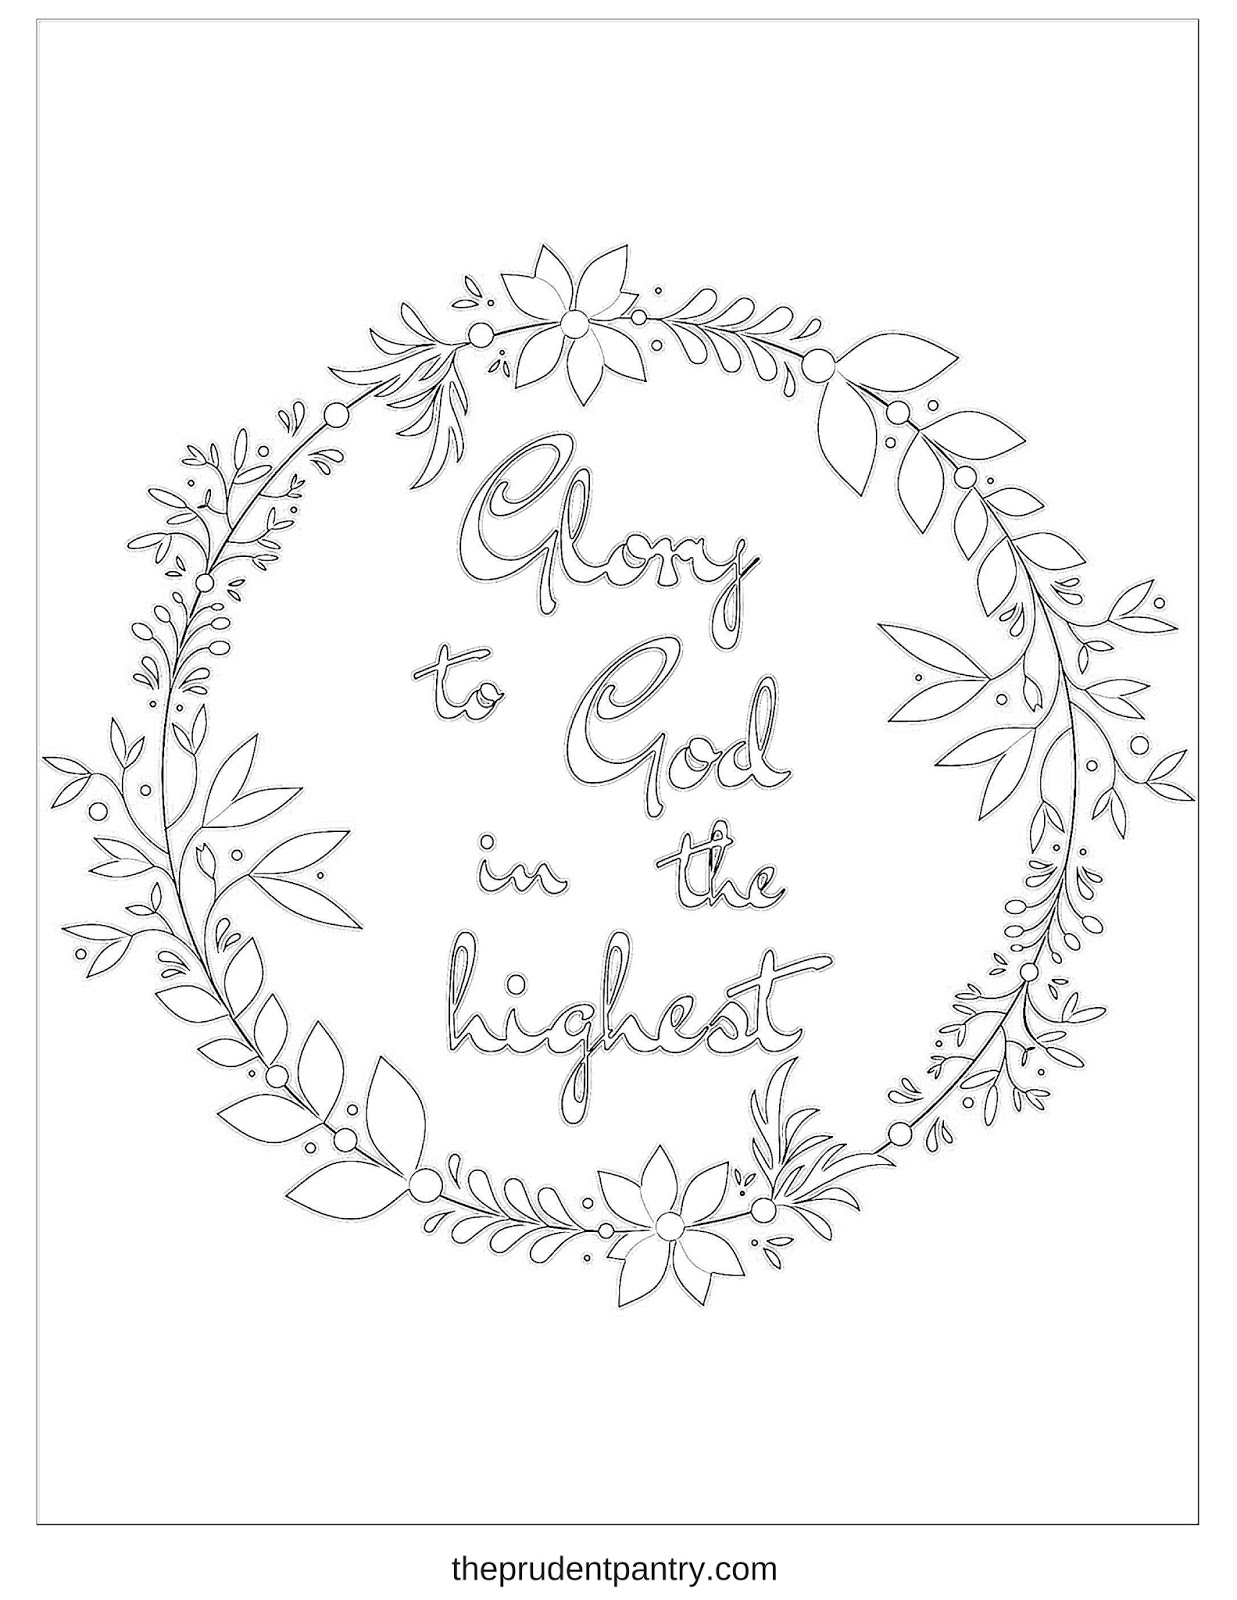 The Prudent Pantry: Glory to God in the highest (printable